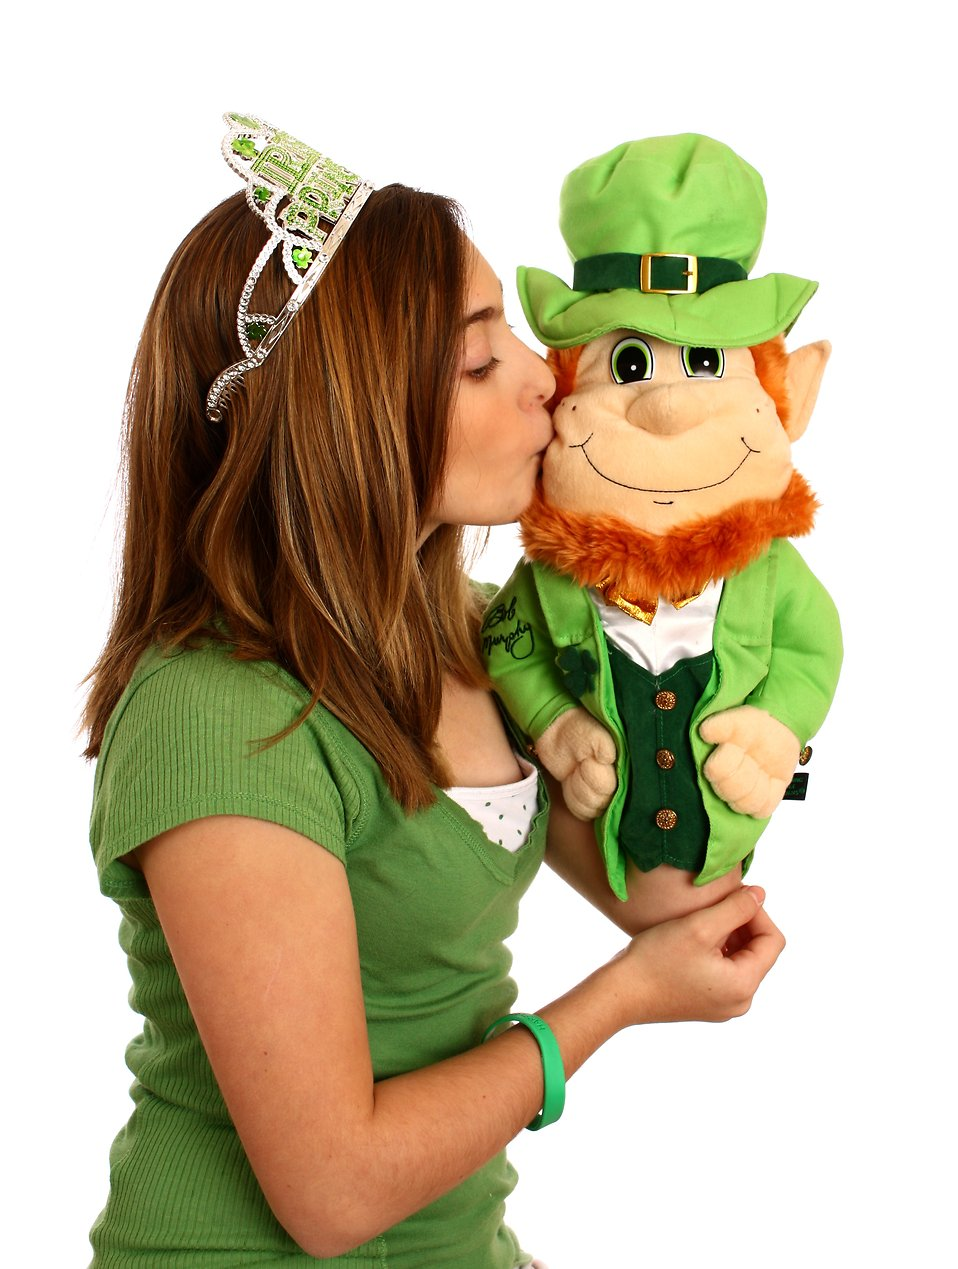 A cute young girl dressed up for Saint Patrick's Day kissing a leprechaun puppet : Free Stock Photo